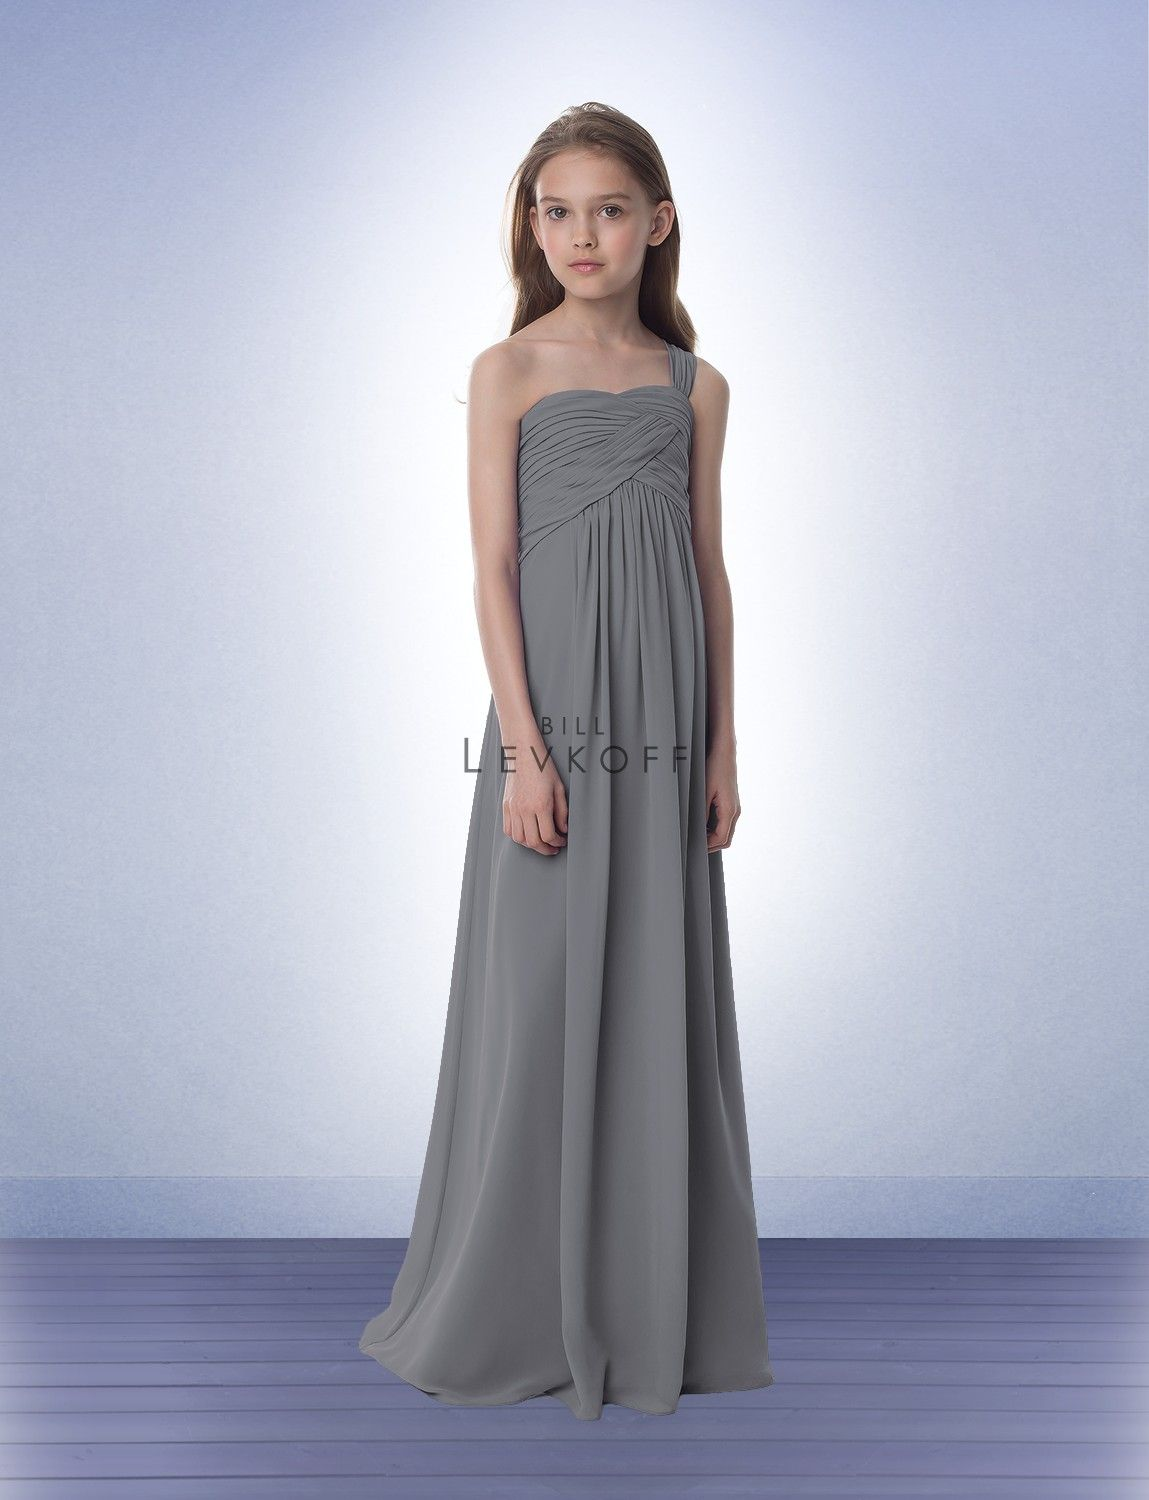 17075cc8f2 Junior Bridesmaids Style 73602 - Flower Girl And Junior Bridesmaids by Bill  Levkoff